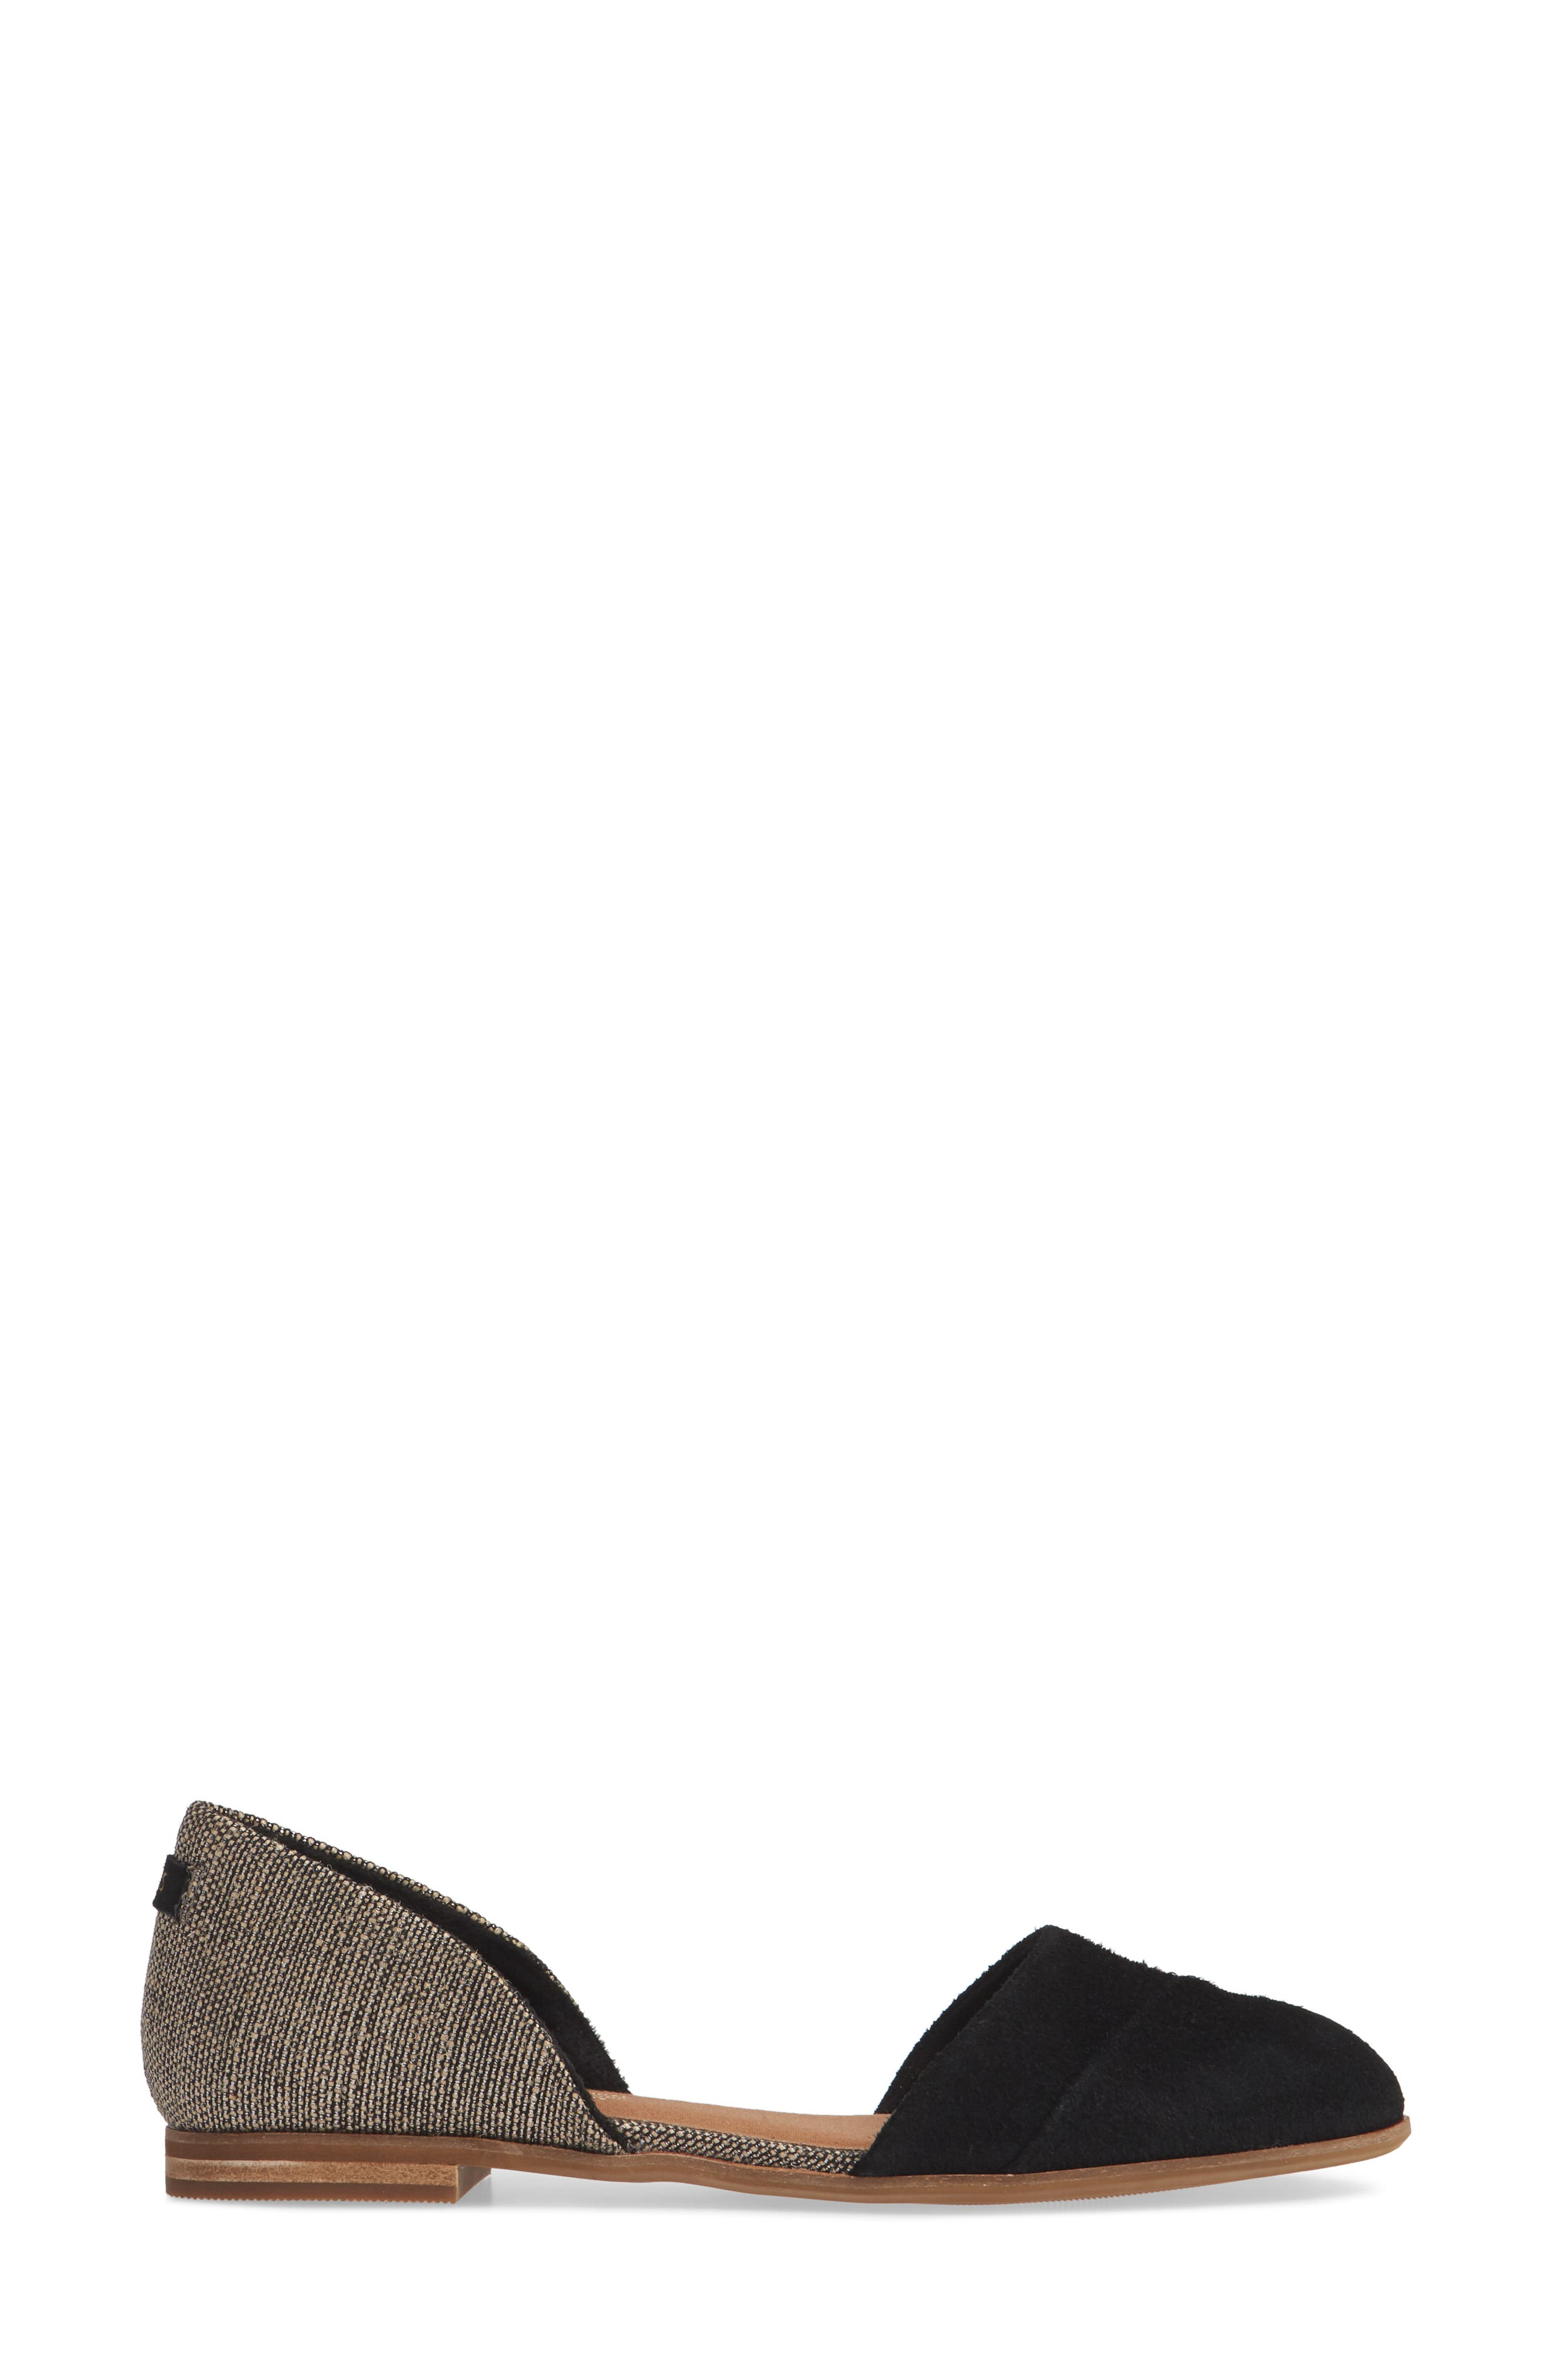 TOMS, Jutti d'Orsay Flat, Alternate thumbnail 3, color, BLACK SUEDE/ METALLIC WOVEN